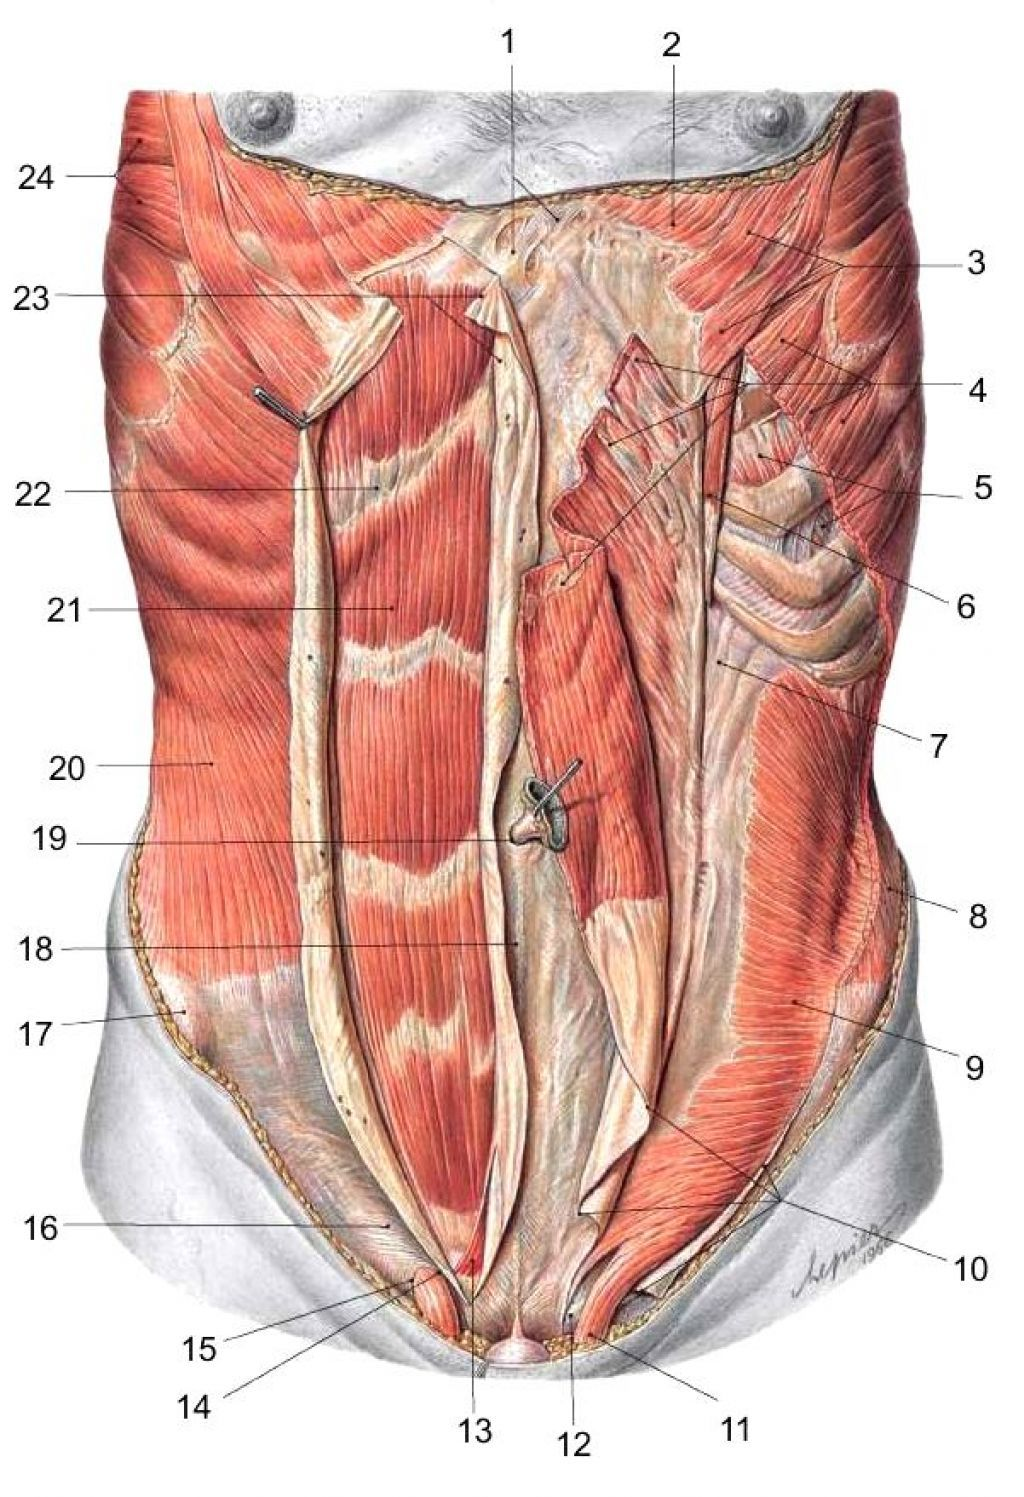 Abdominal Muscles Anatomy | Ways to A Healthy BODY | Pinterest ...